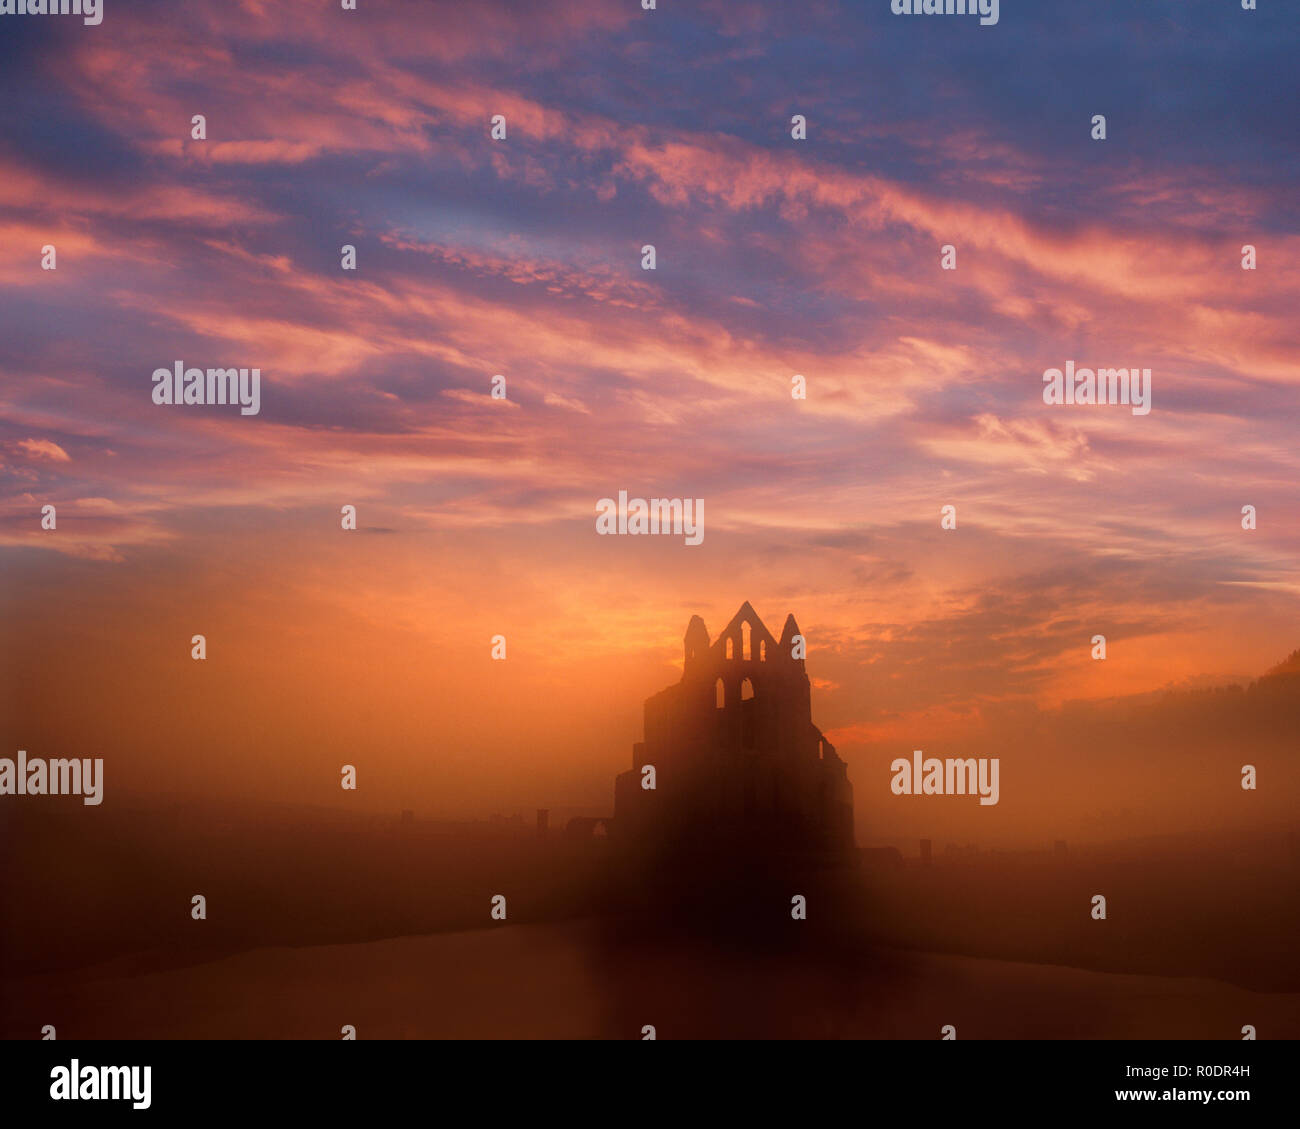 GB - NORTH YORKSHIRE: Sunet over Whitby Abbey Stock Photo